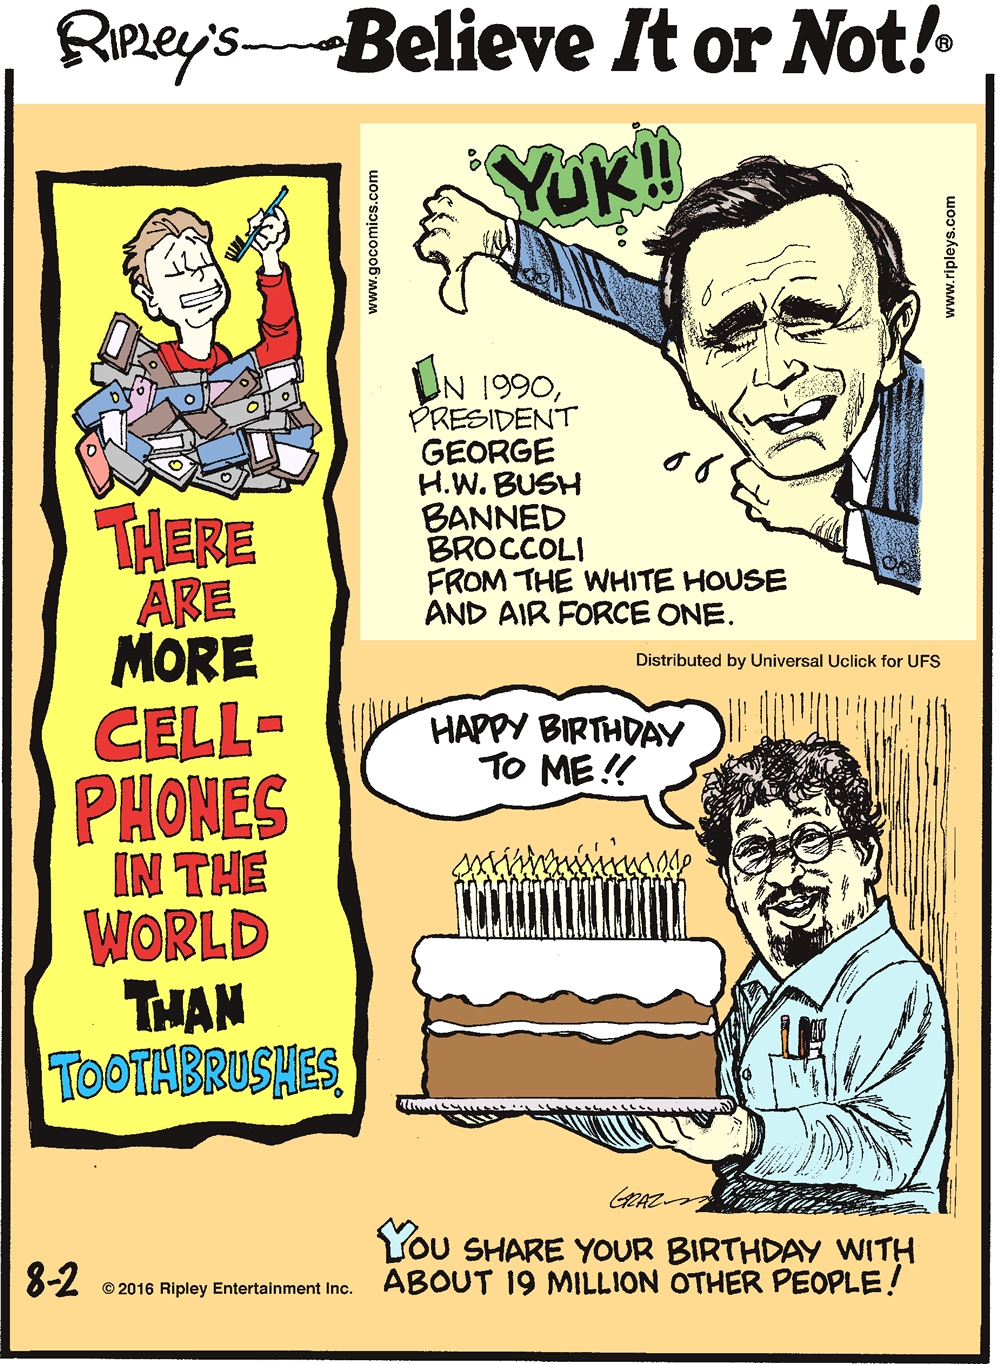 There are more cellphones in the world than toothbrushes. -------------------- In 1990, President George H.W. Bush banned broccoli from the White House and Air Force One. -------------------- You share your birthday with about 19 million other people!